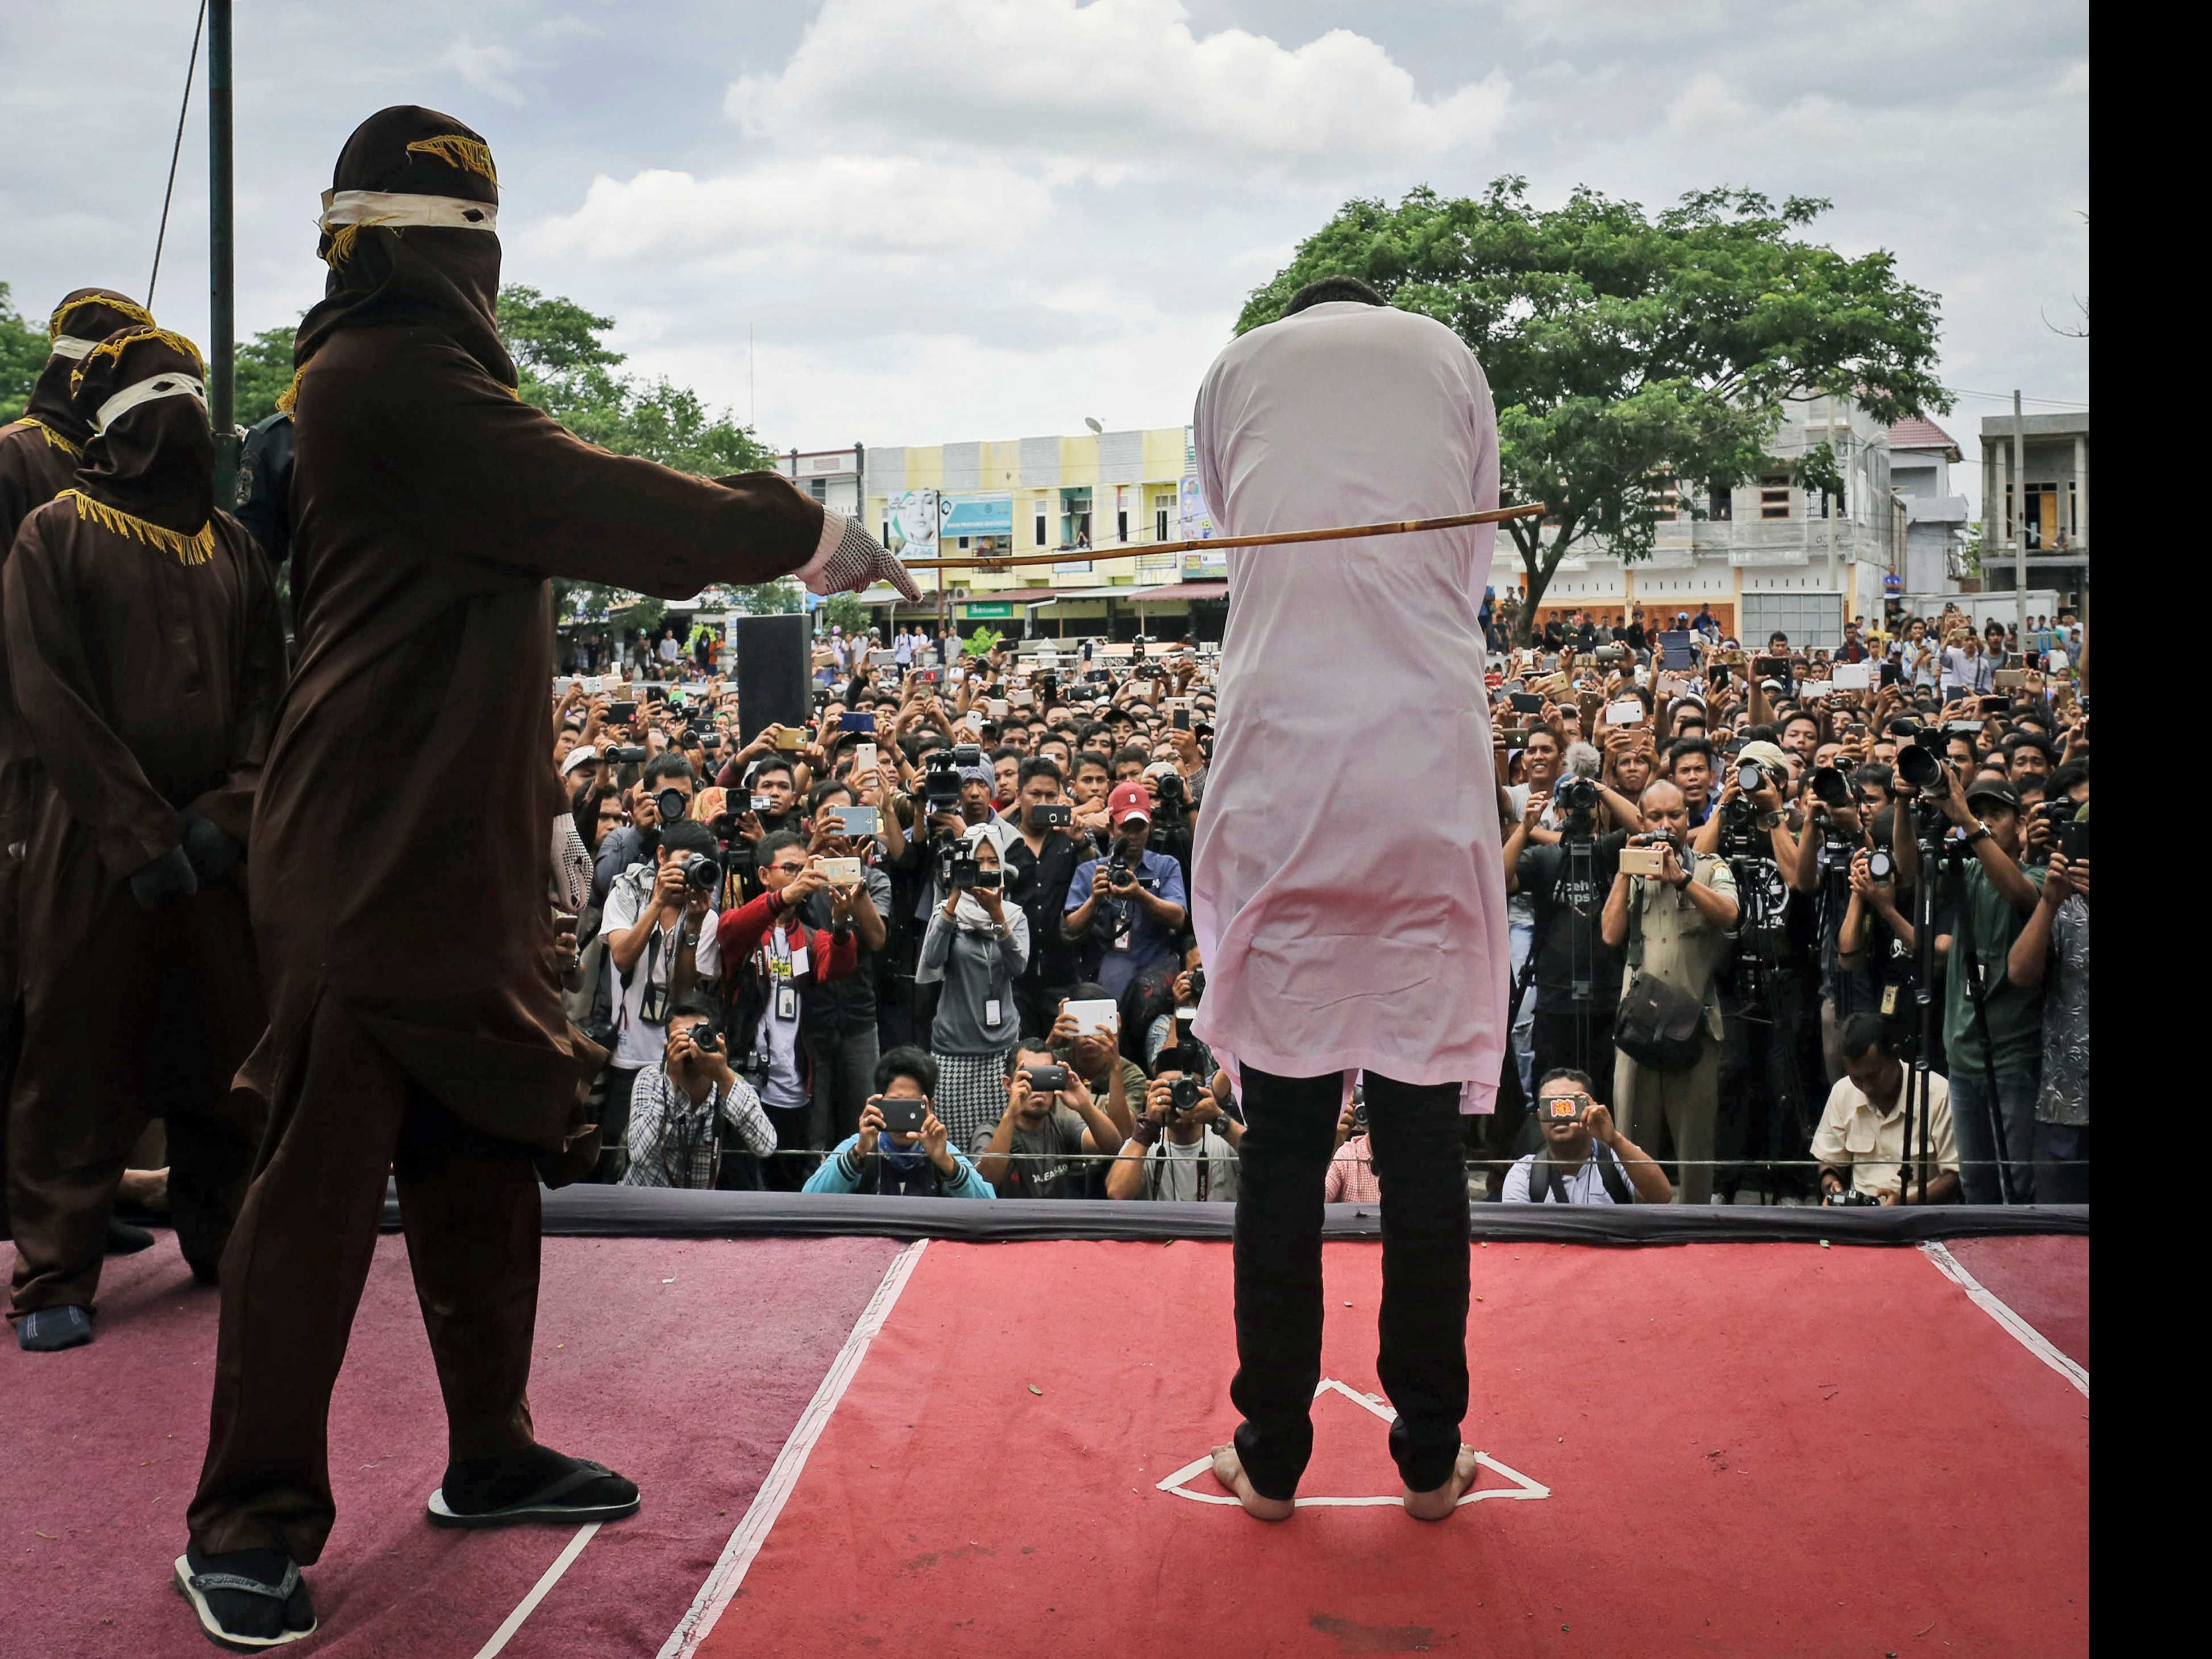 Indonesia's Aceh to Take Caning Indoors After Backlash